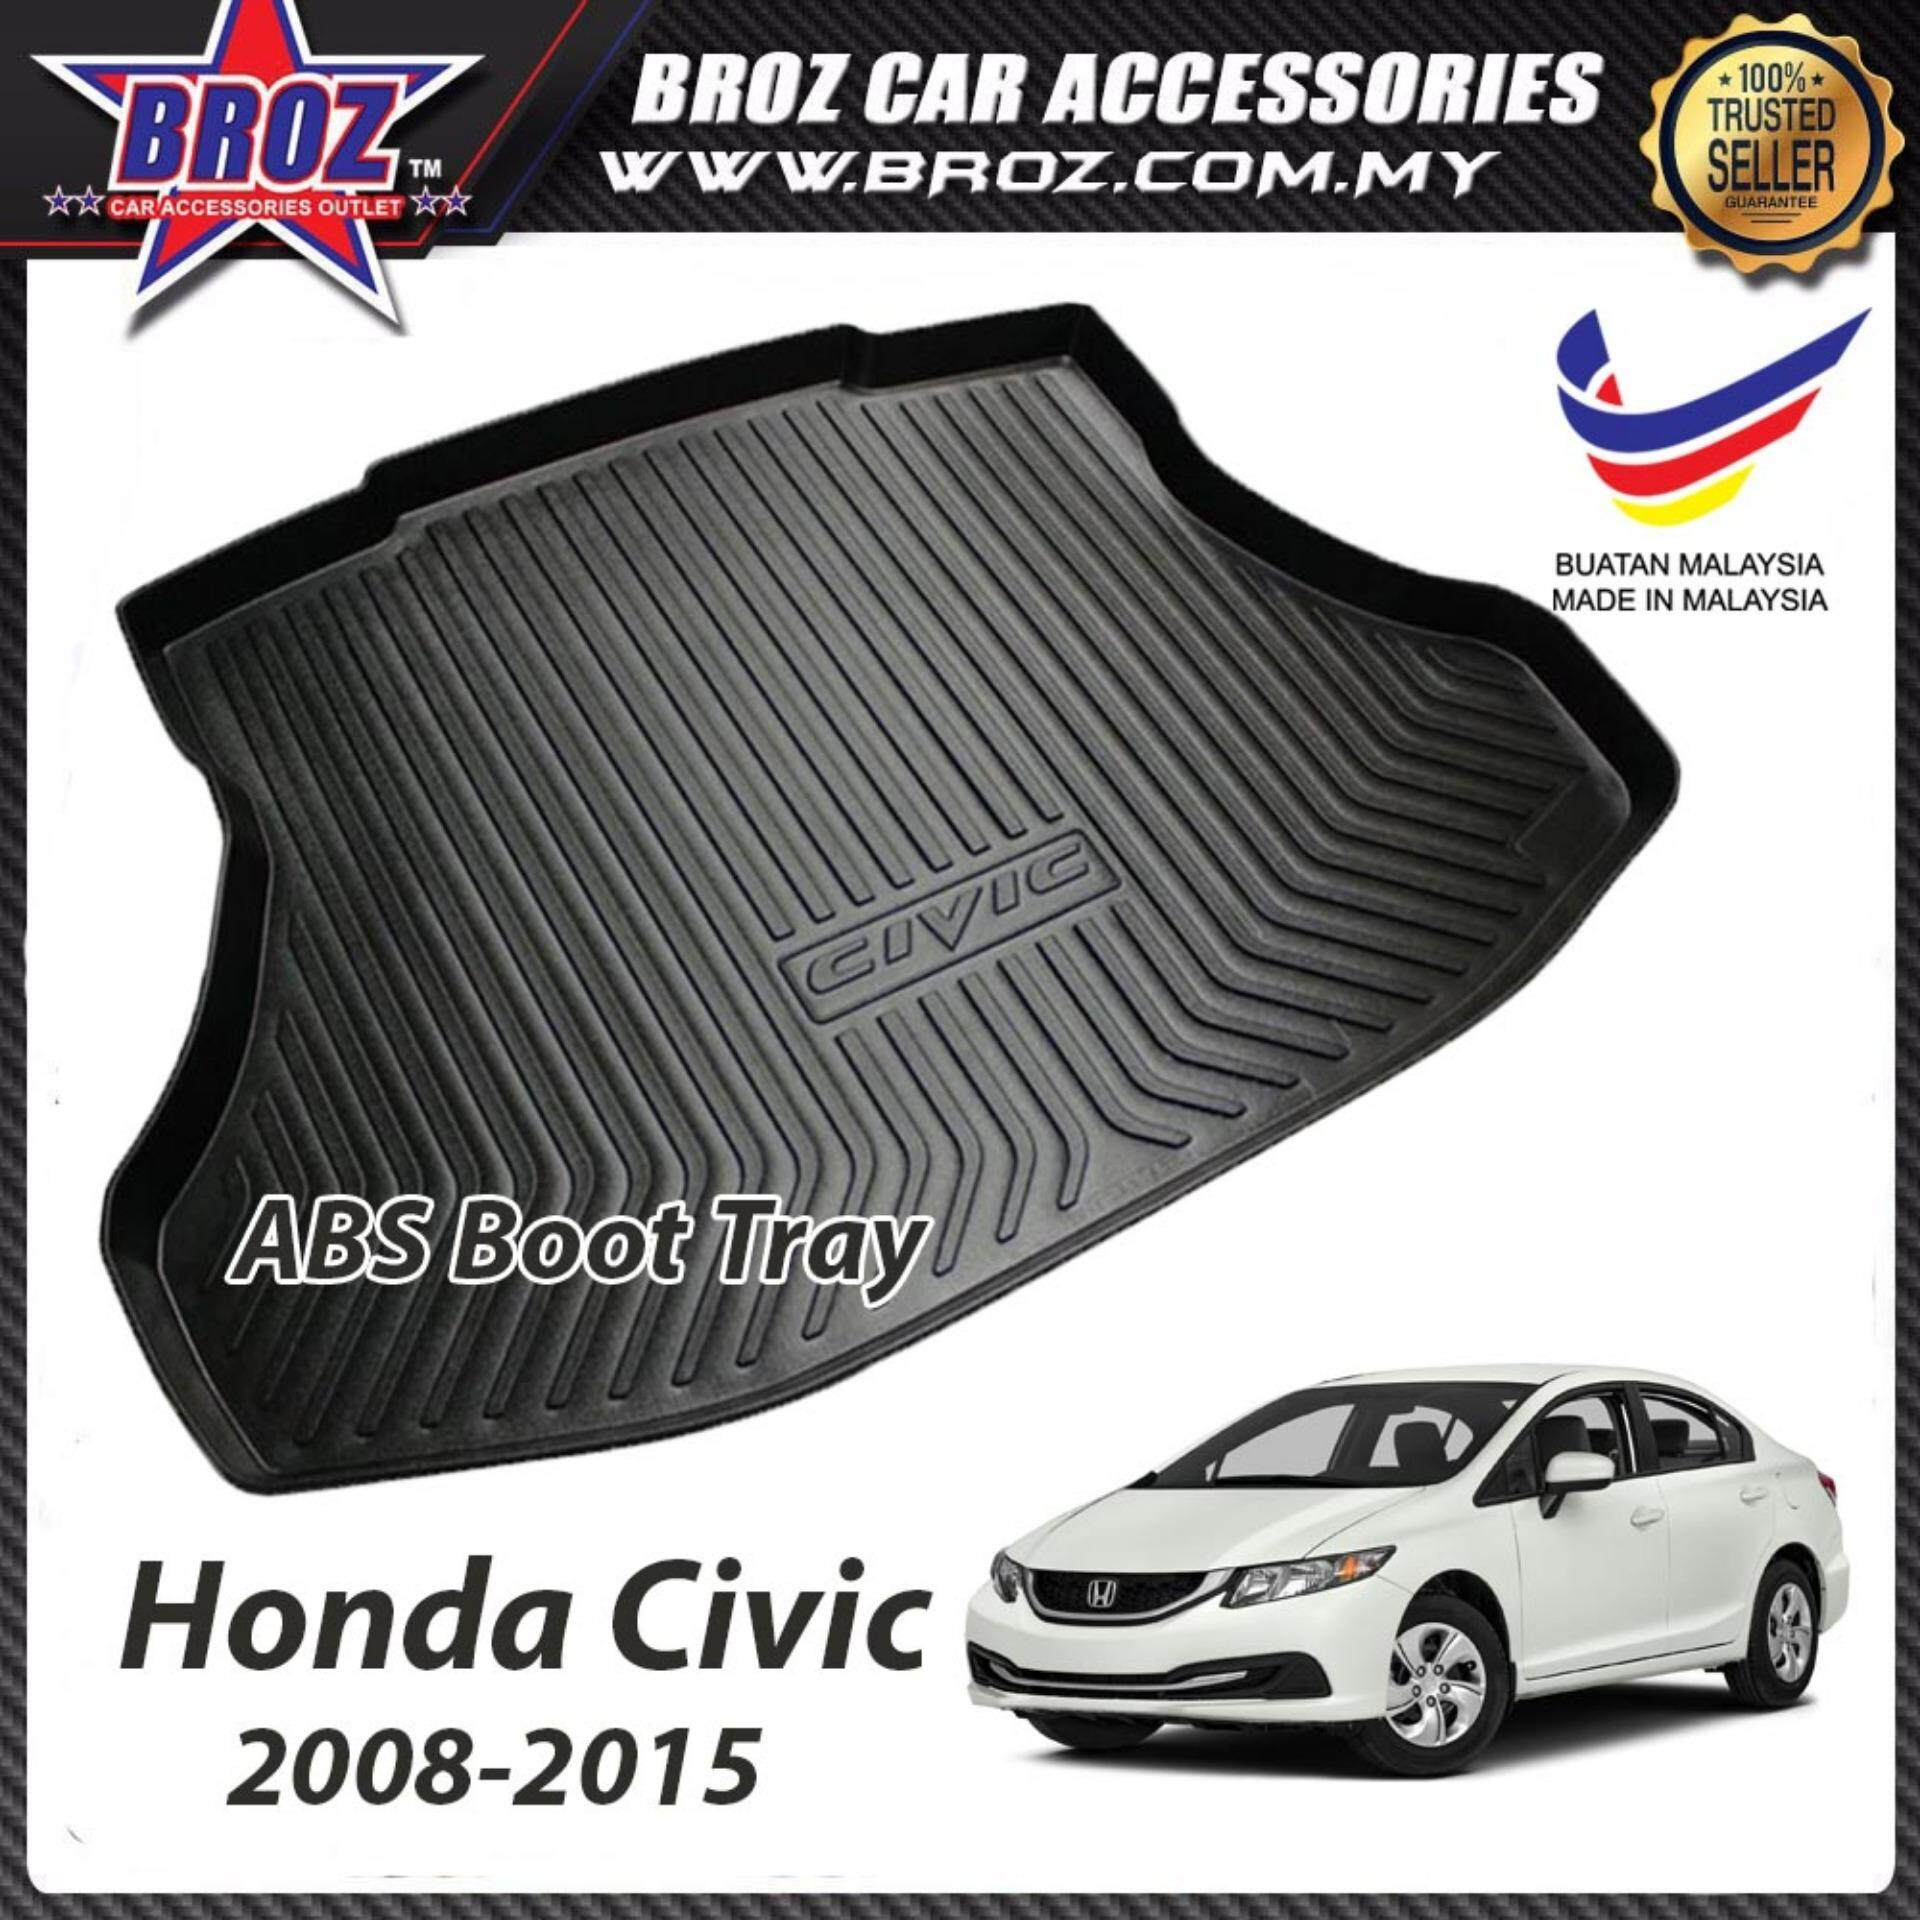 Honda Civic 2008-2015 ABS Car Rear Boot Trunk Tray